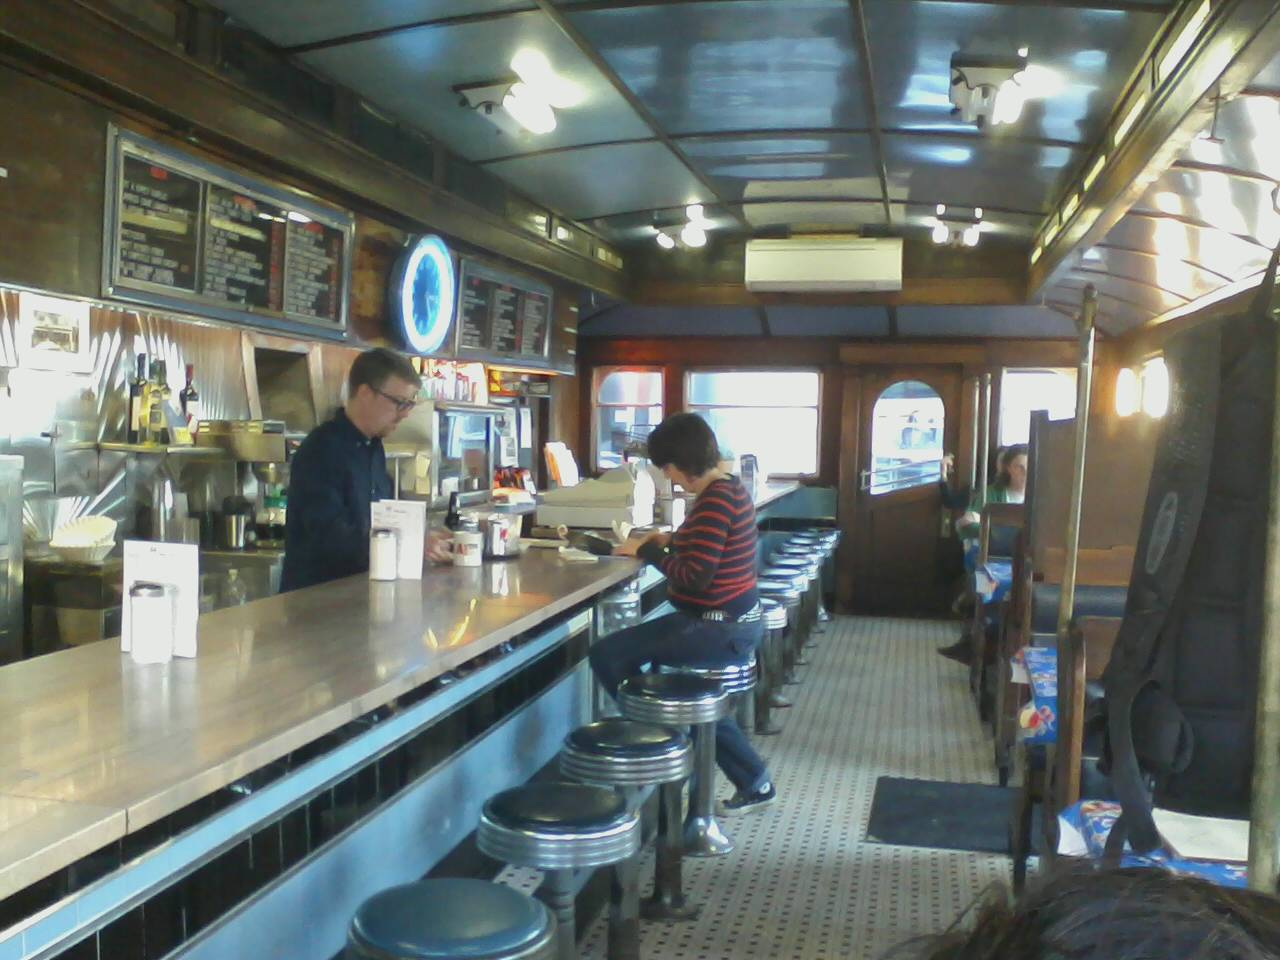 A1 Diner In Gardiner Maine Dinner With Friends In A Great Small